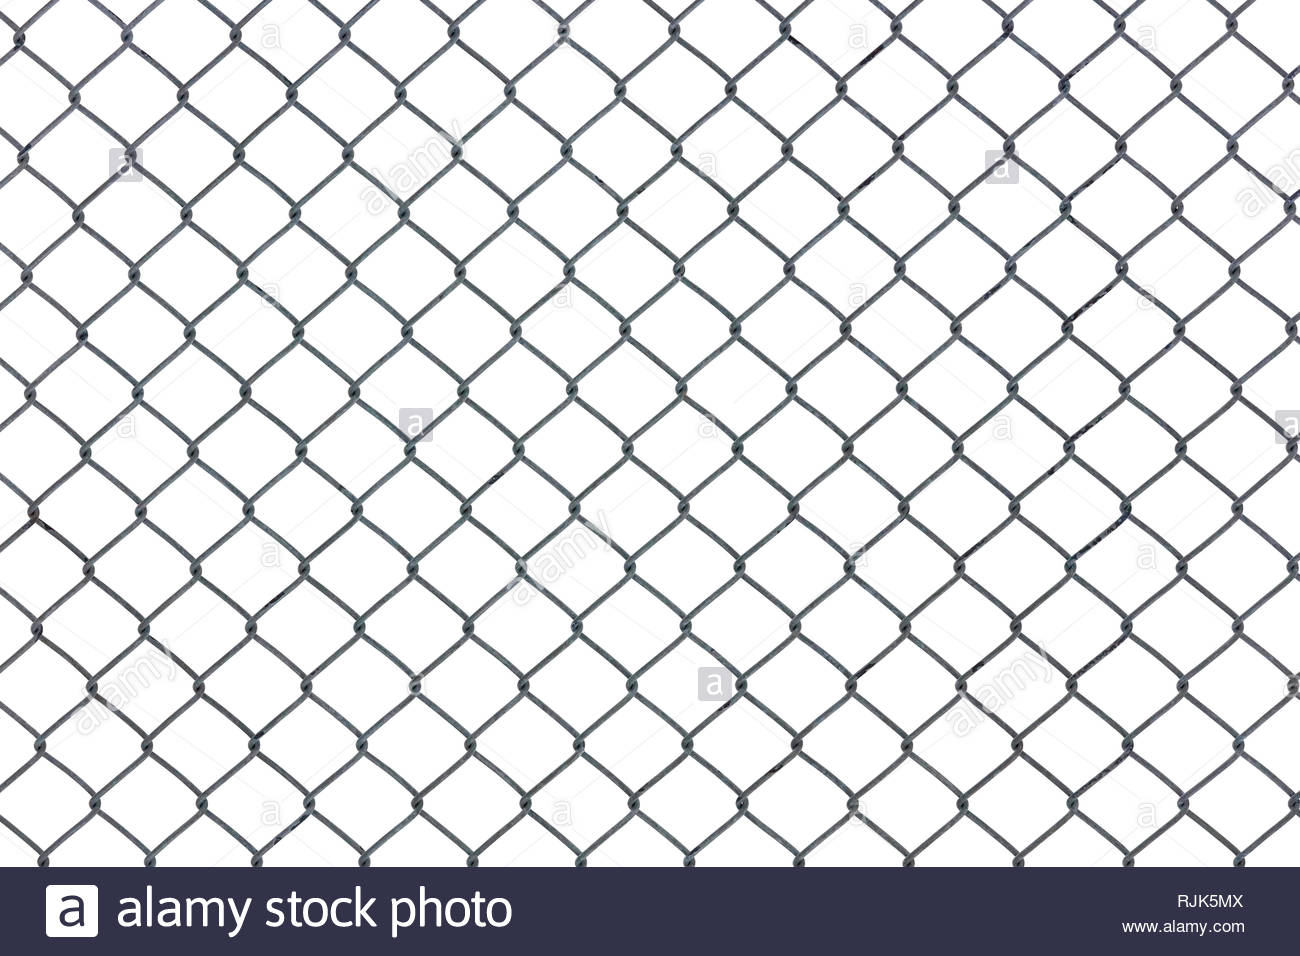 Chain link wire fence in a diamond shaped mesh pattern. - Stock Image